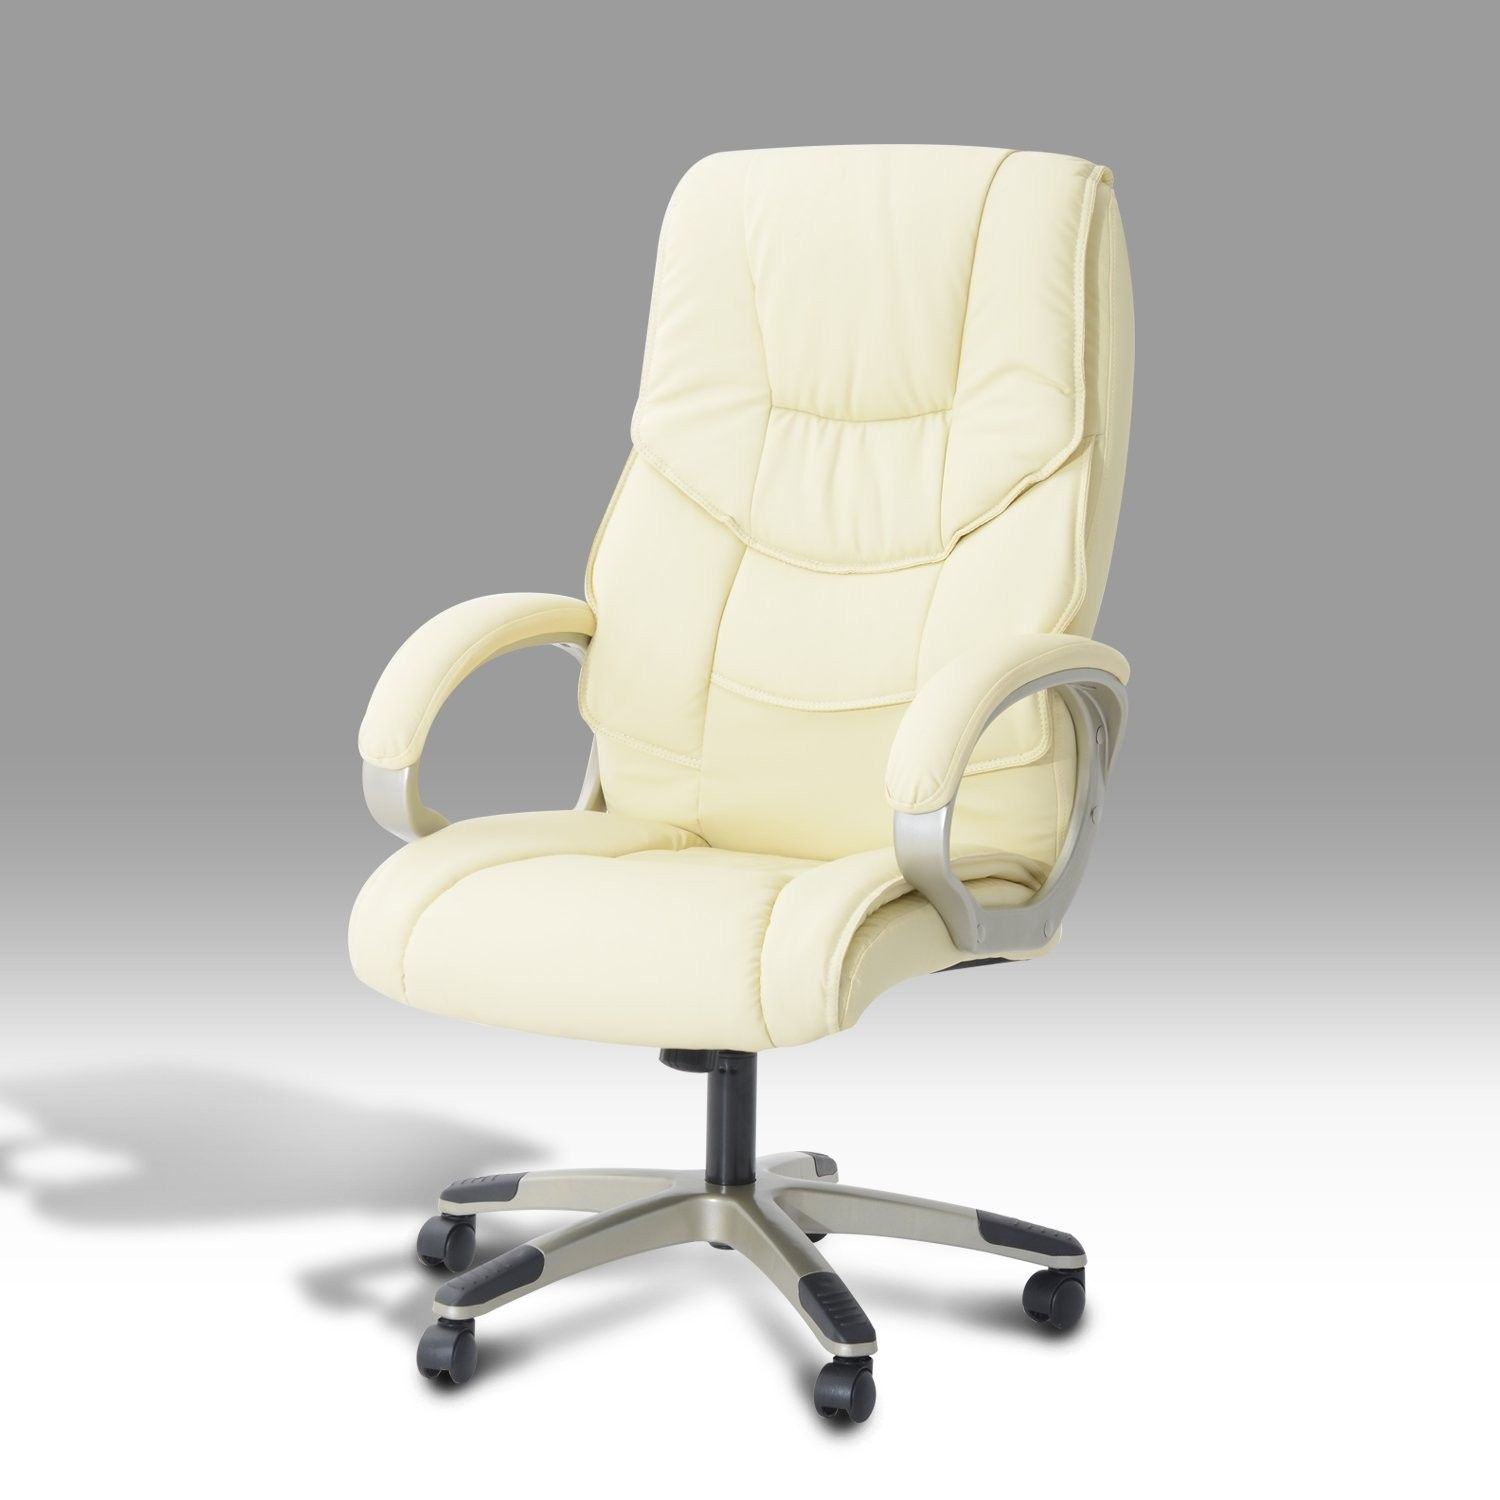 168 Reference Of Chair Desk All In One In 2020 Desk Chair Chair Swivel Chair Desk